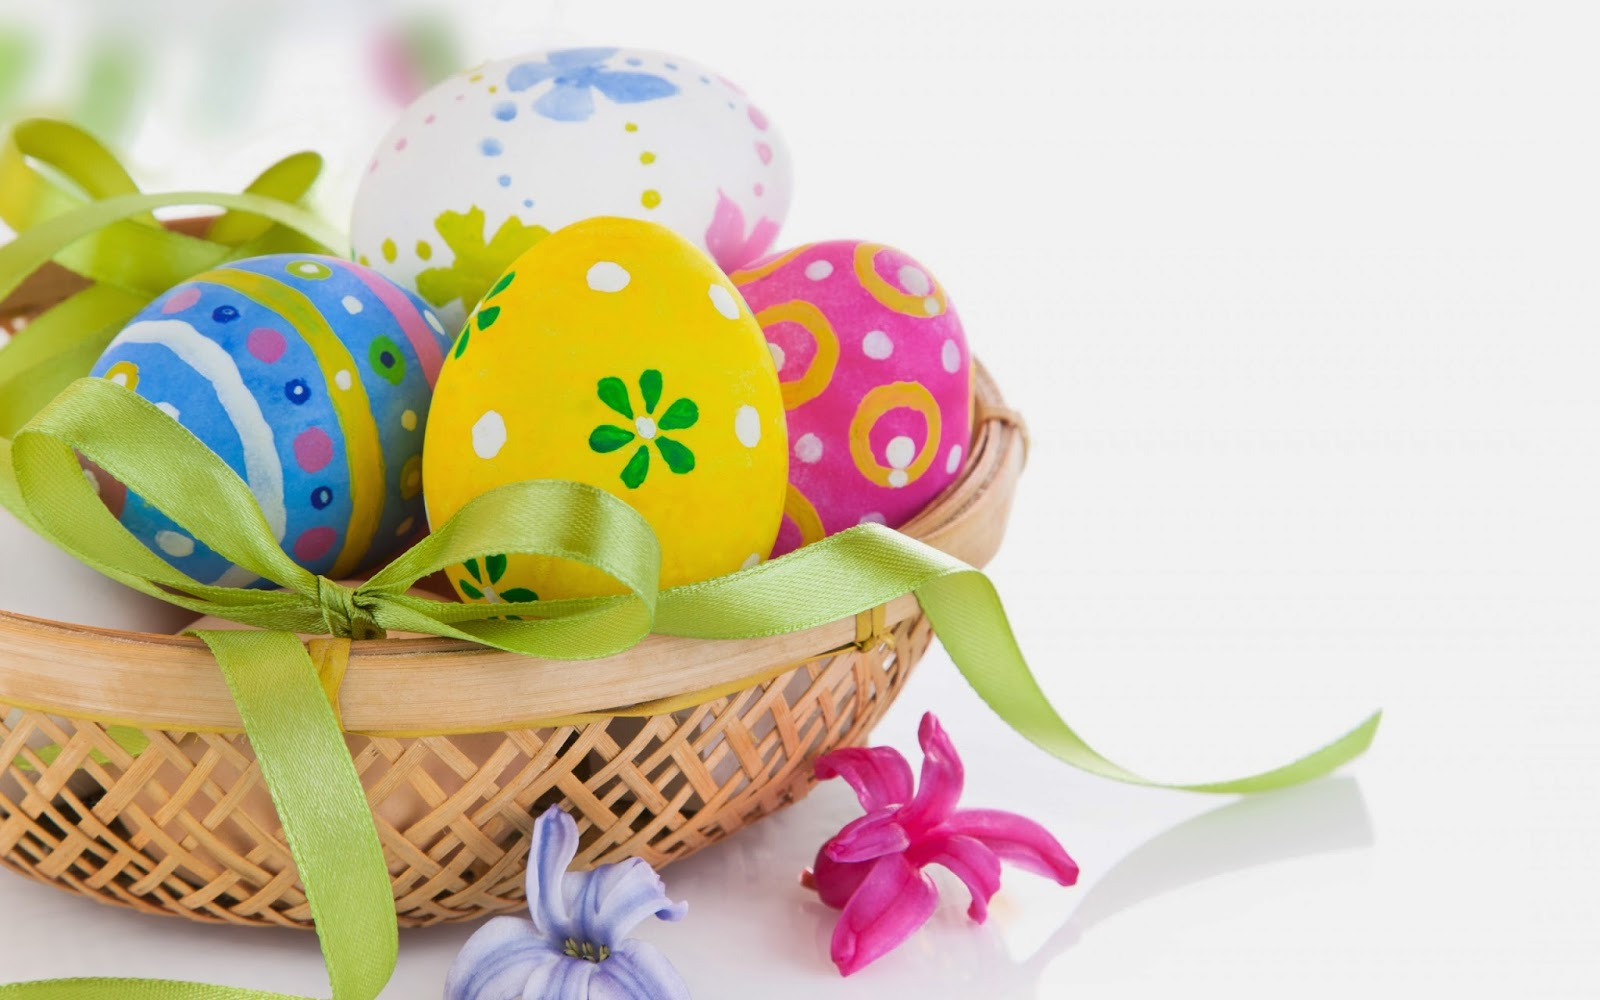 Happy Easter 2015 Easter Wishes 2015 Happy Easter 2015 Greeting